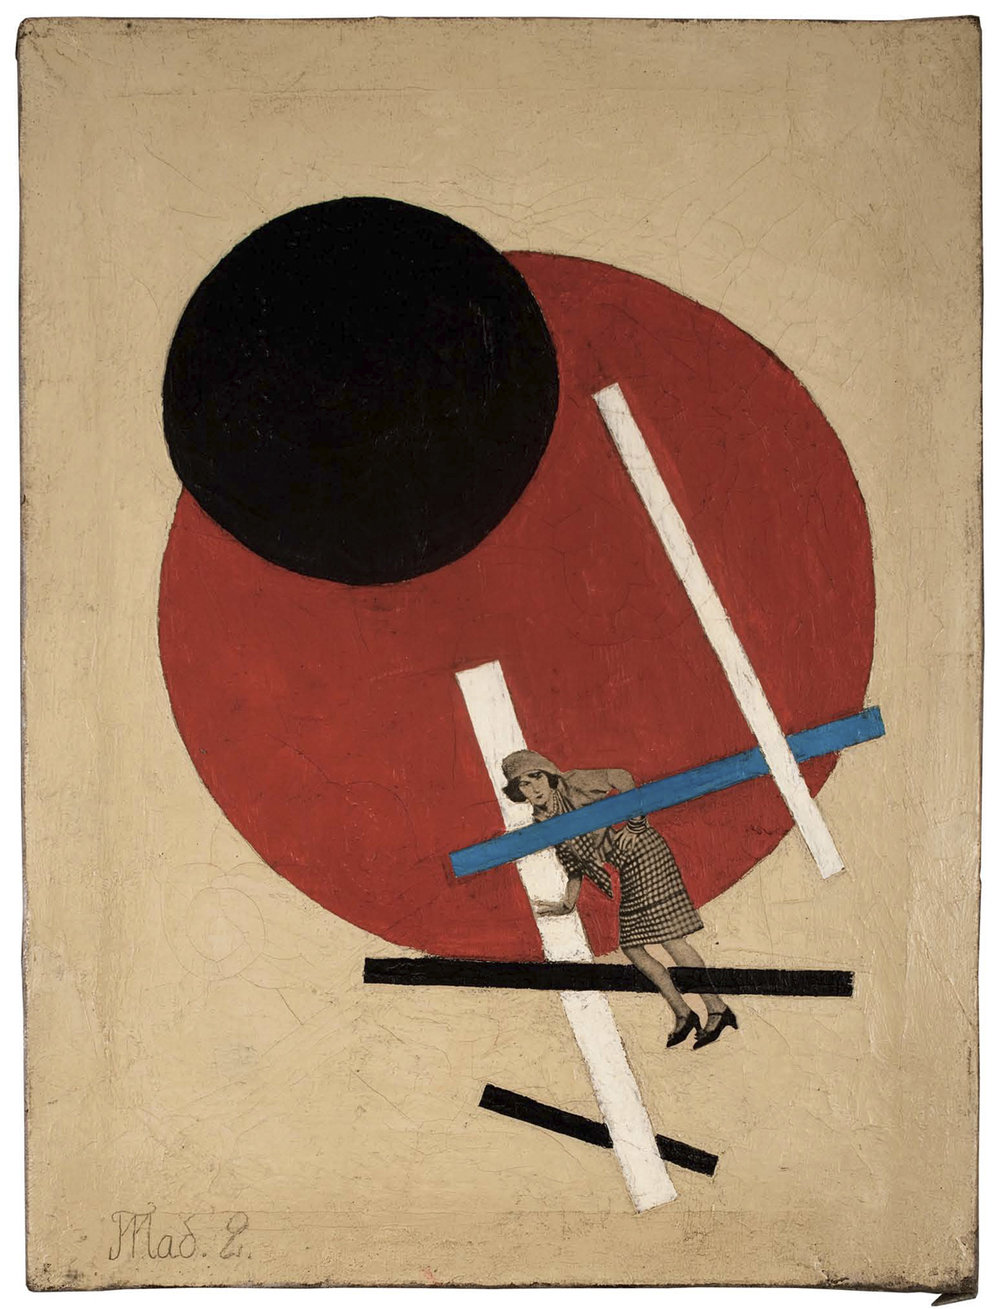 "Unattributed. Unsigned.  In the style of El Lissitzky. Text in Russian, lower left front, translates to ""Tab.2"".  Oil and collage on canvas. 40 x 30 cm."